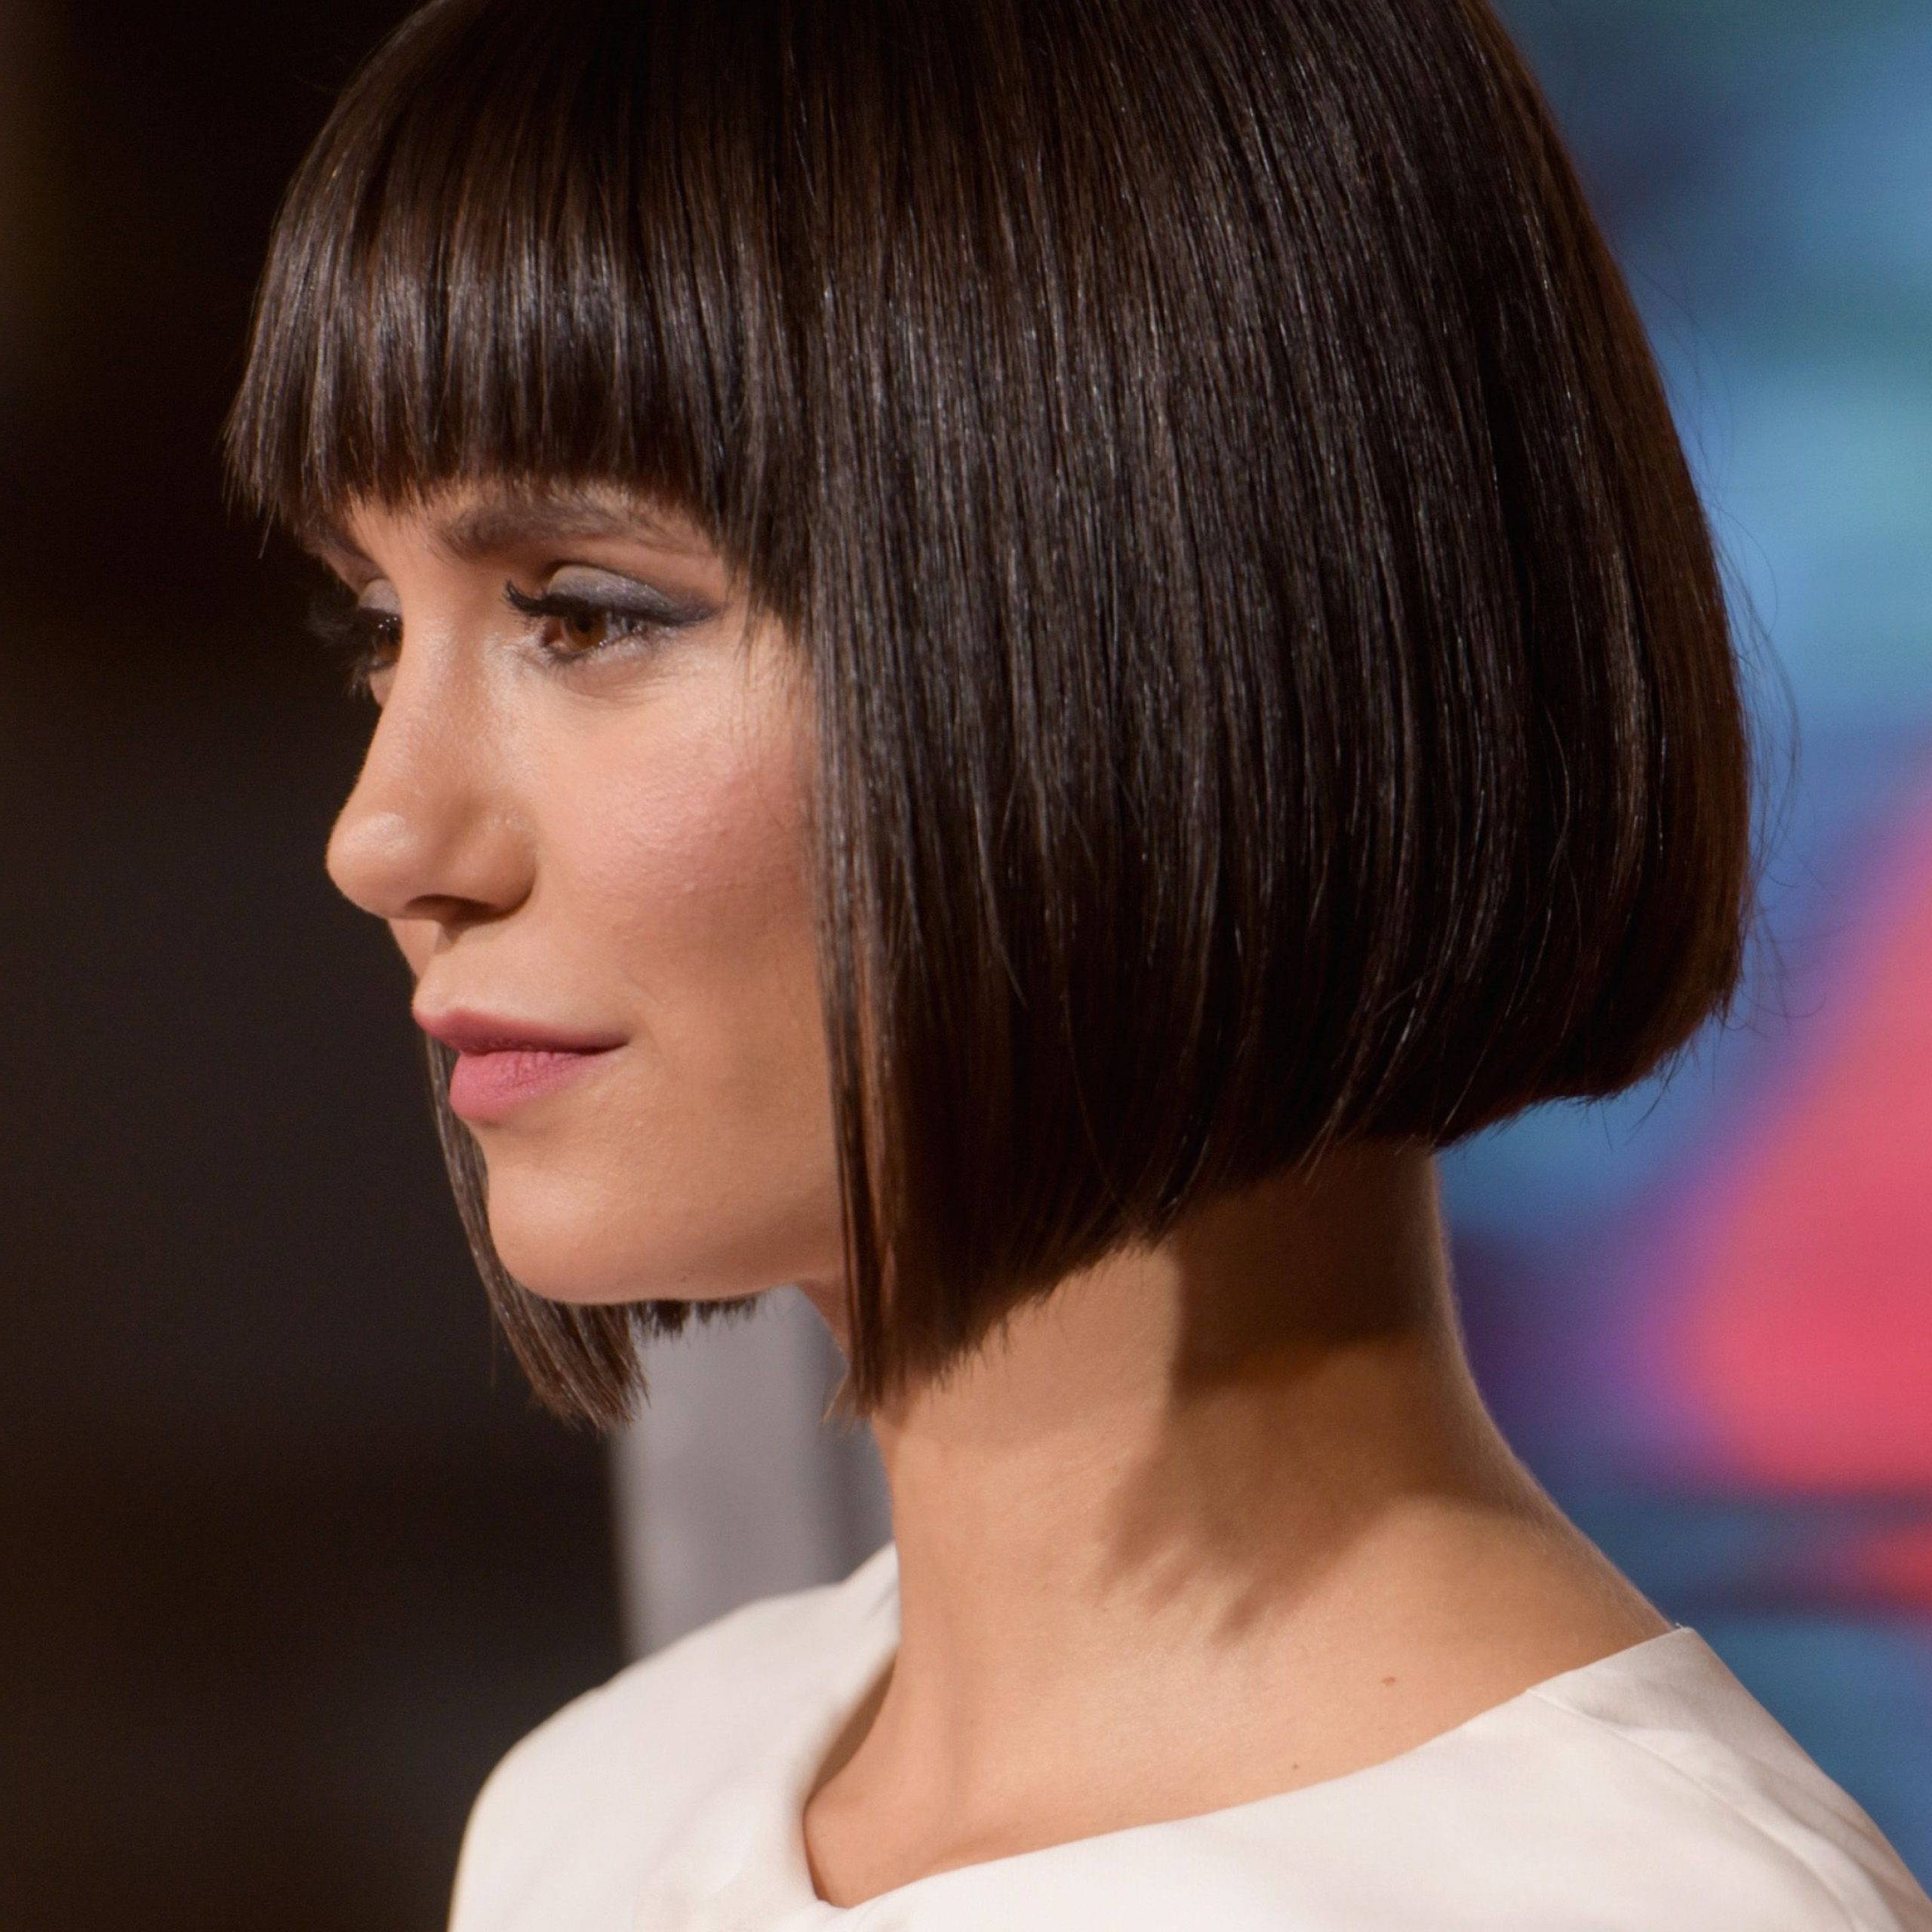 70 Best Bob Styles Of 2020 – Bob Haircuts & Hairstyles For Women With Regard To Latest Voluminous Bob Hairstyles (View 11 of 20)